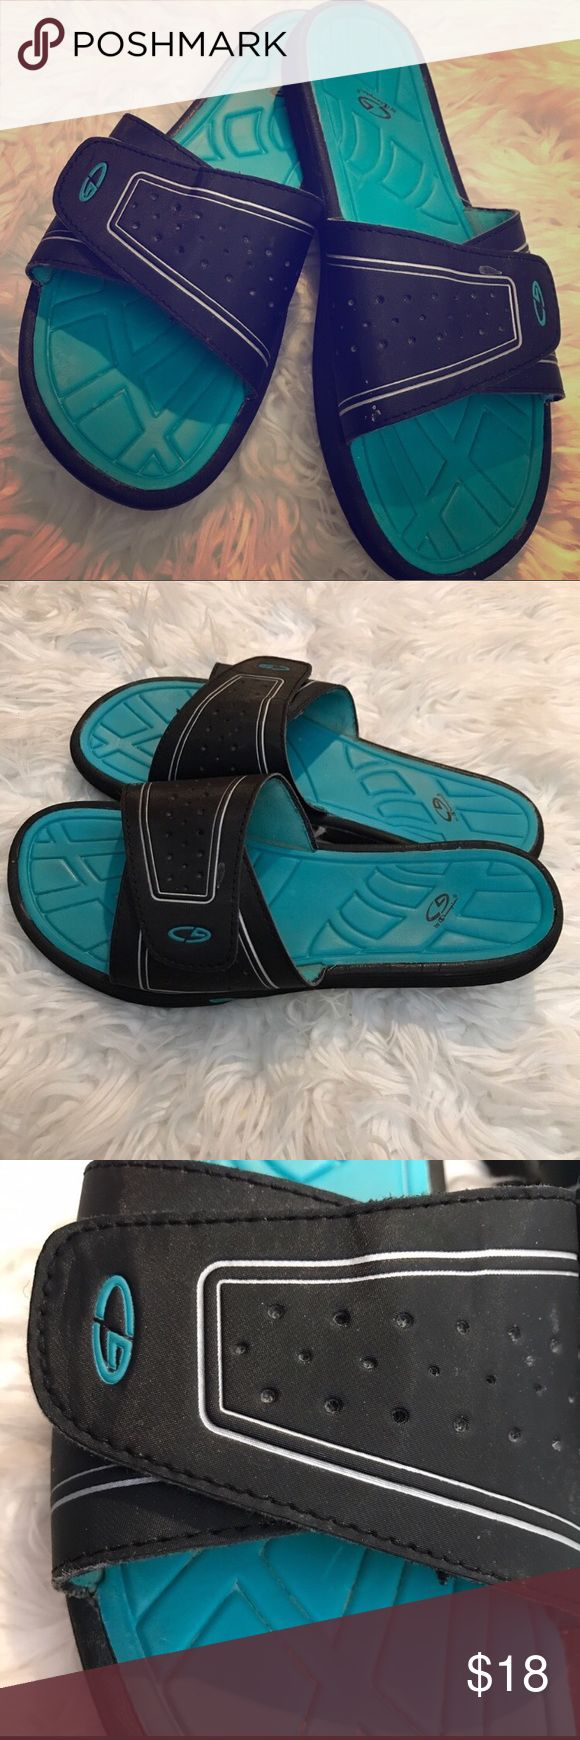 C9 by Champion Slide Sandal Sz 10 Black n turquoise. Adjustable Velcro. Gently used. Indoor only, never outside. Sz 10 Champion Shoes